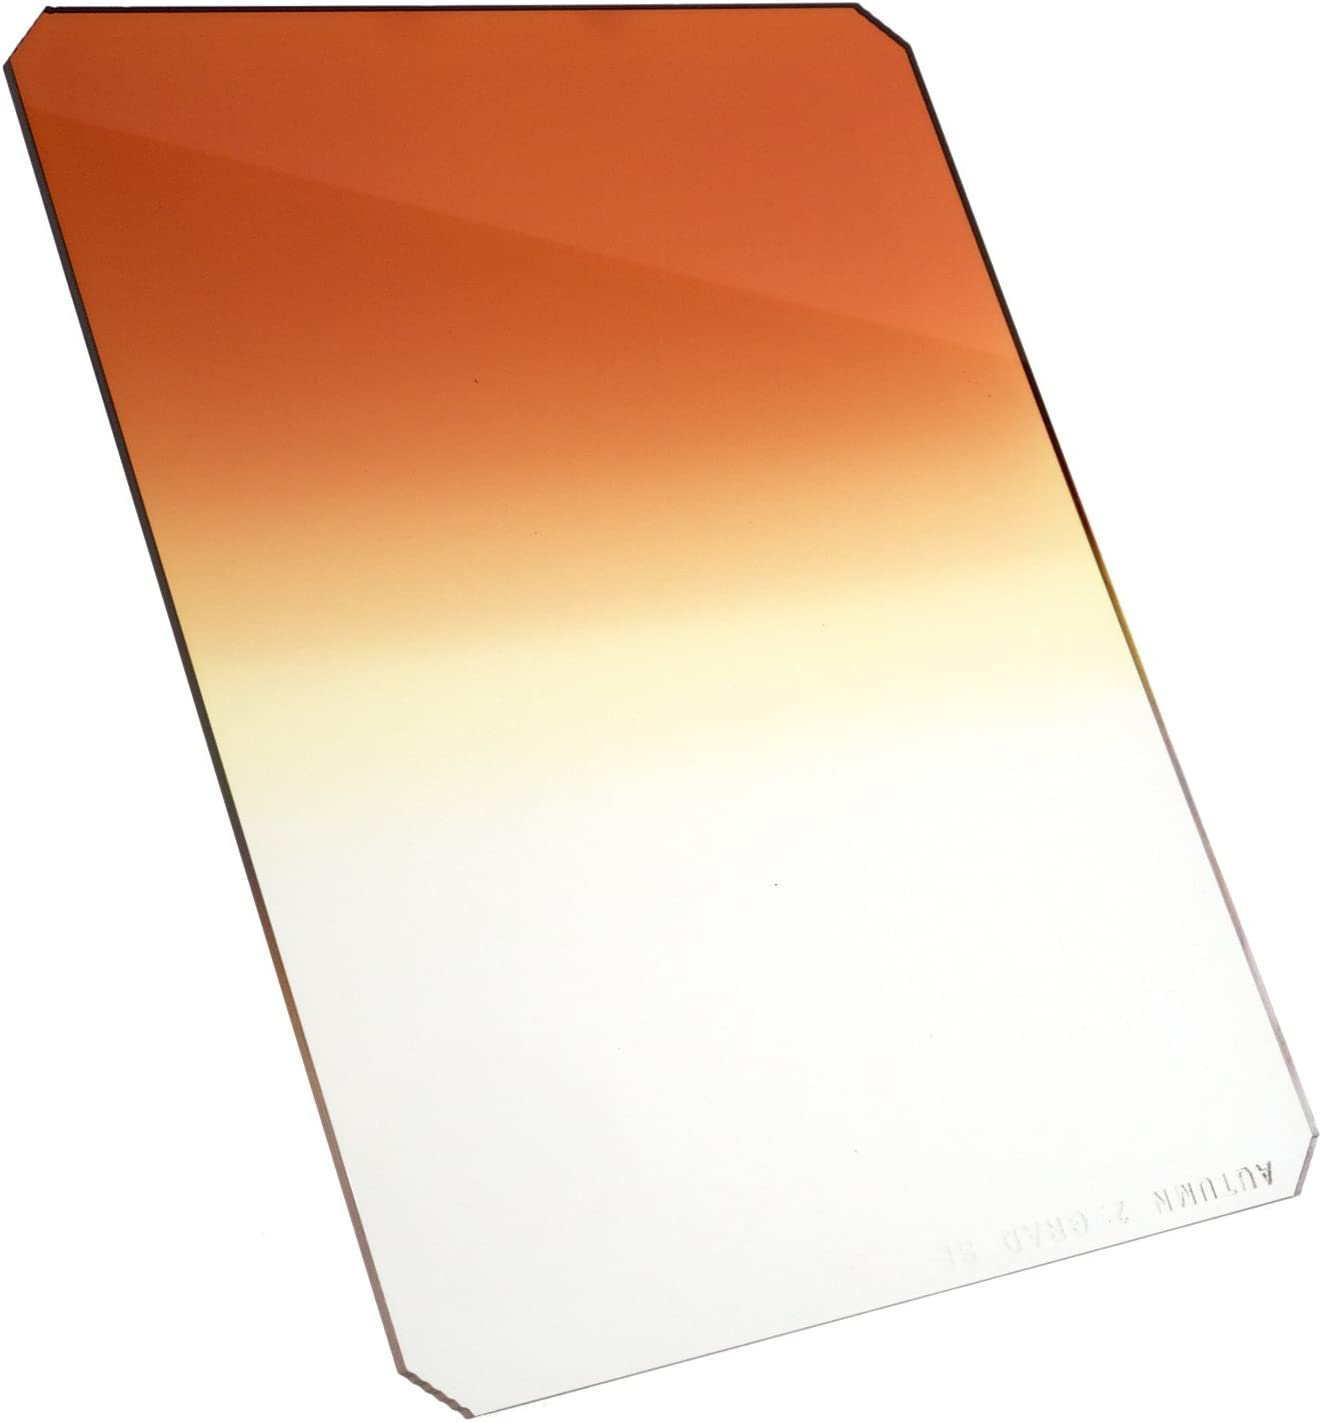 Formatt-Hitech 85x110mm 3.35x4.35 Resin Combo Grad Soft Edge Autumn 2//ND0.9